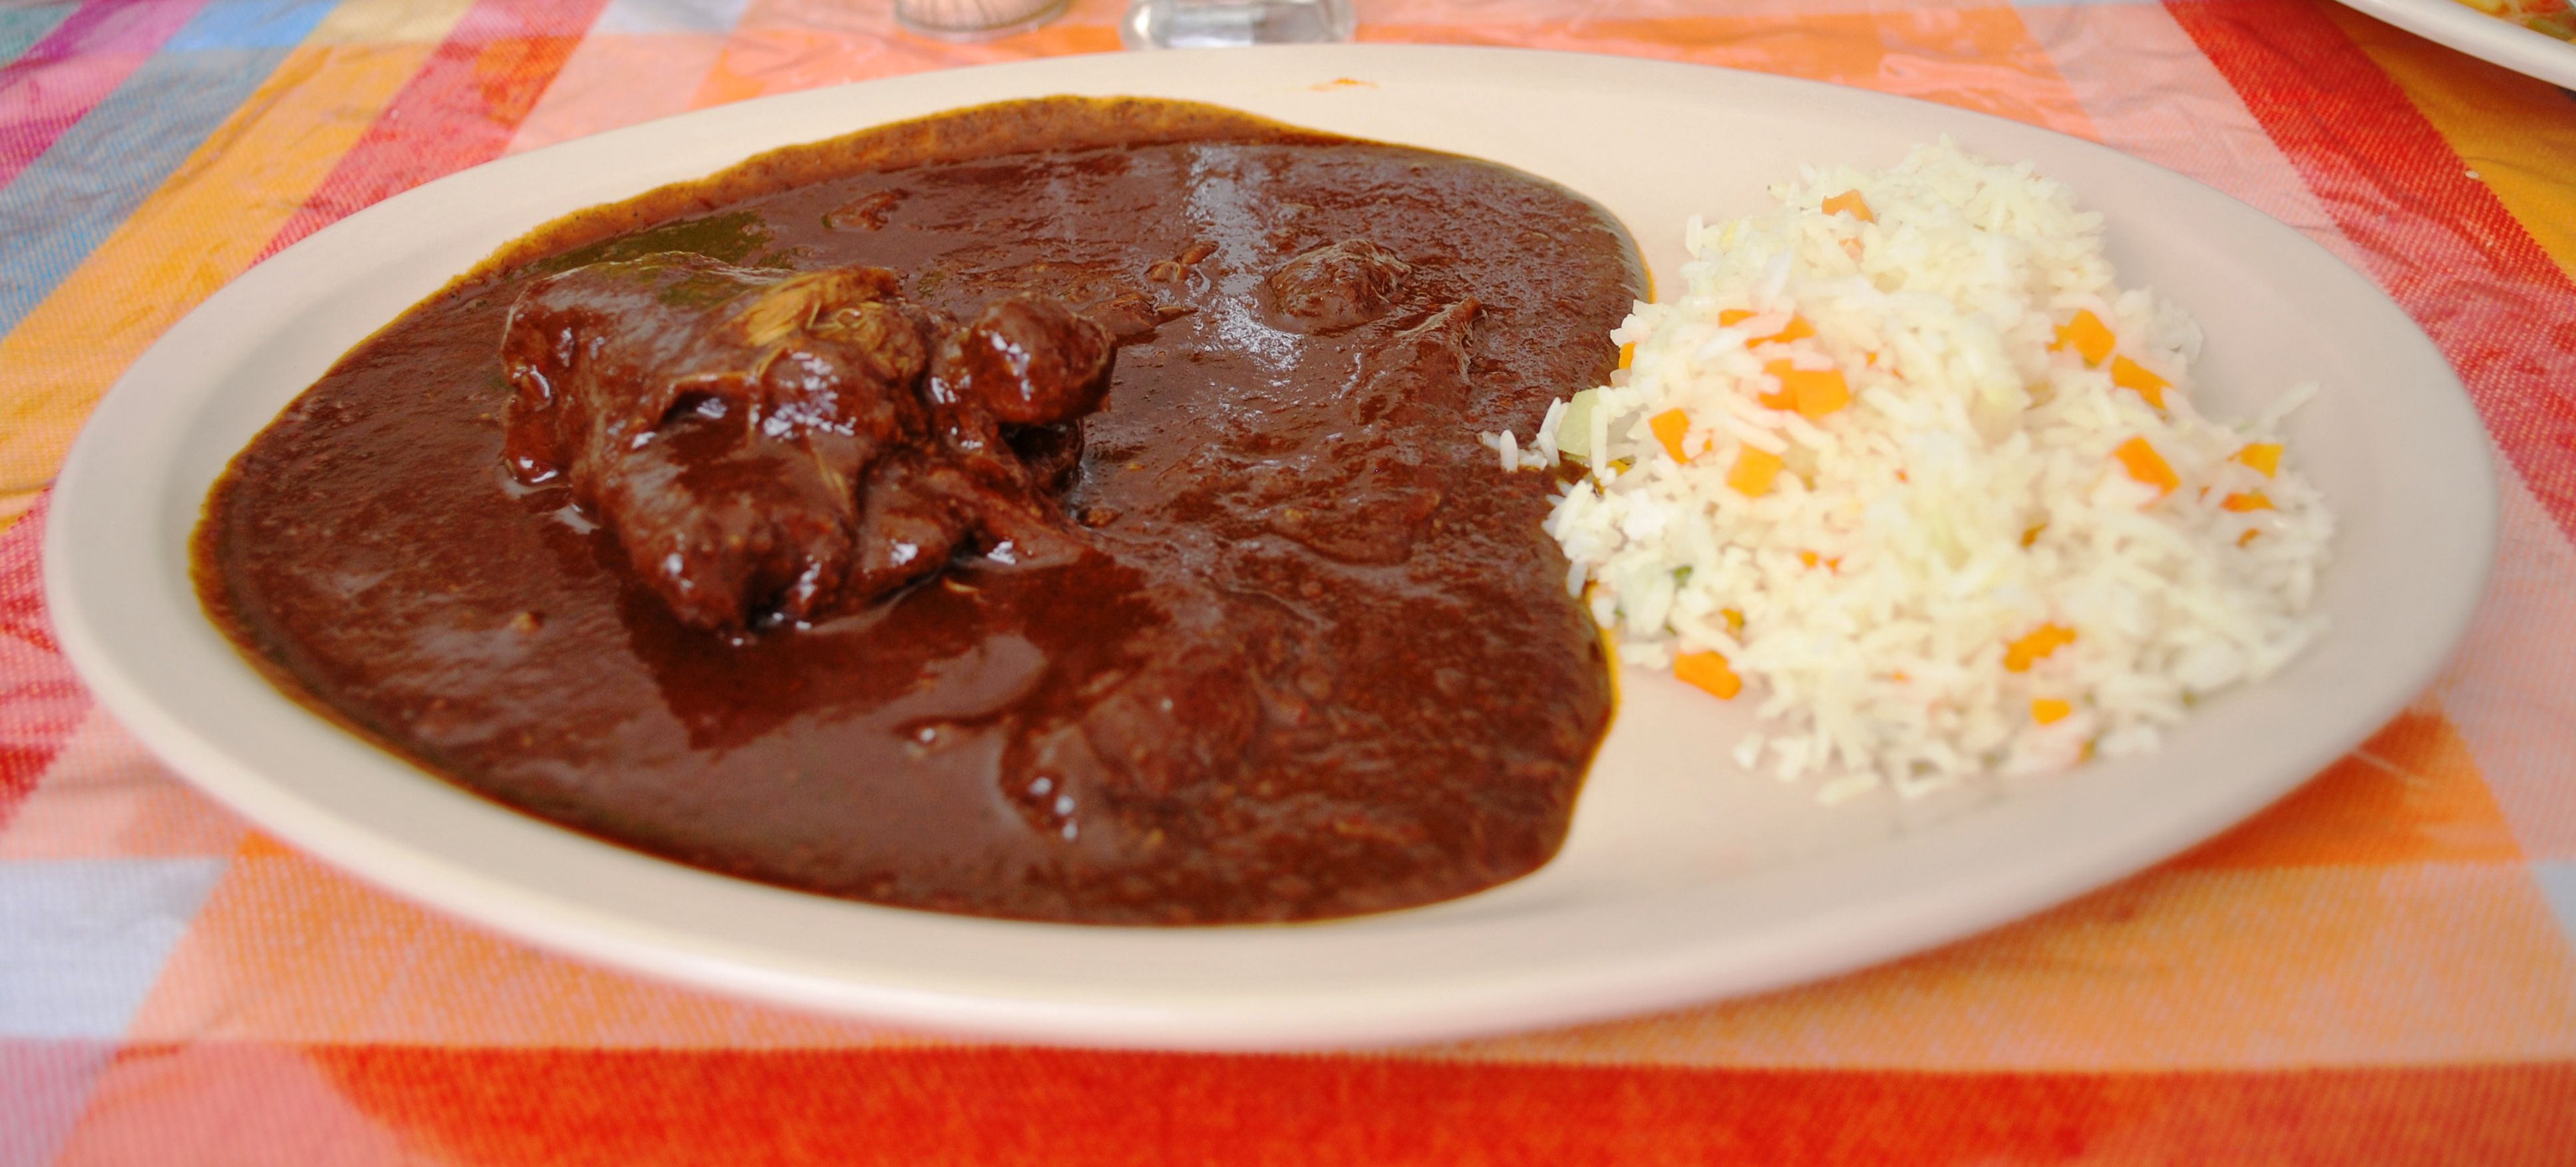 El Mole Poblano mole sauce - wikipedia, the free encyclopedia